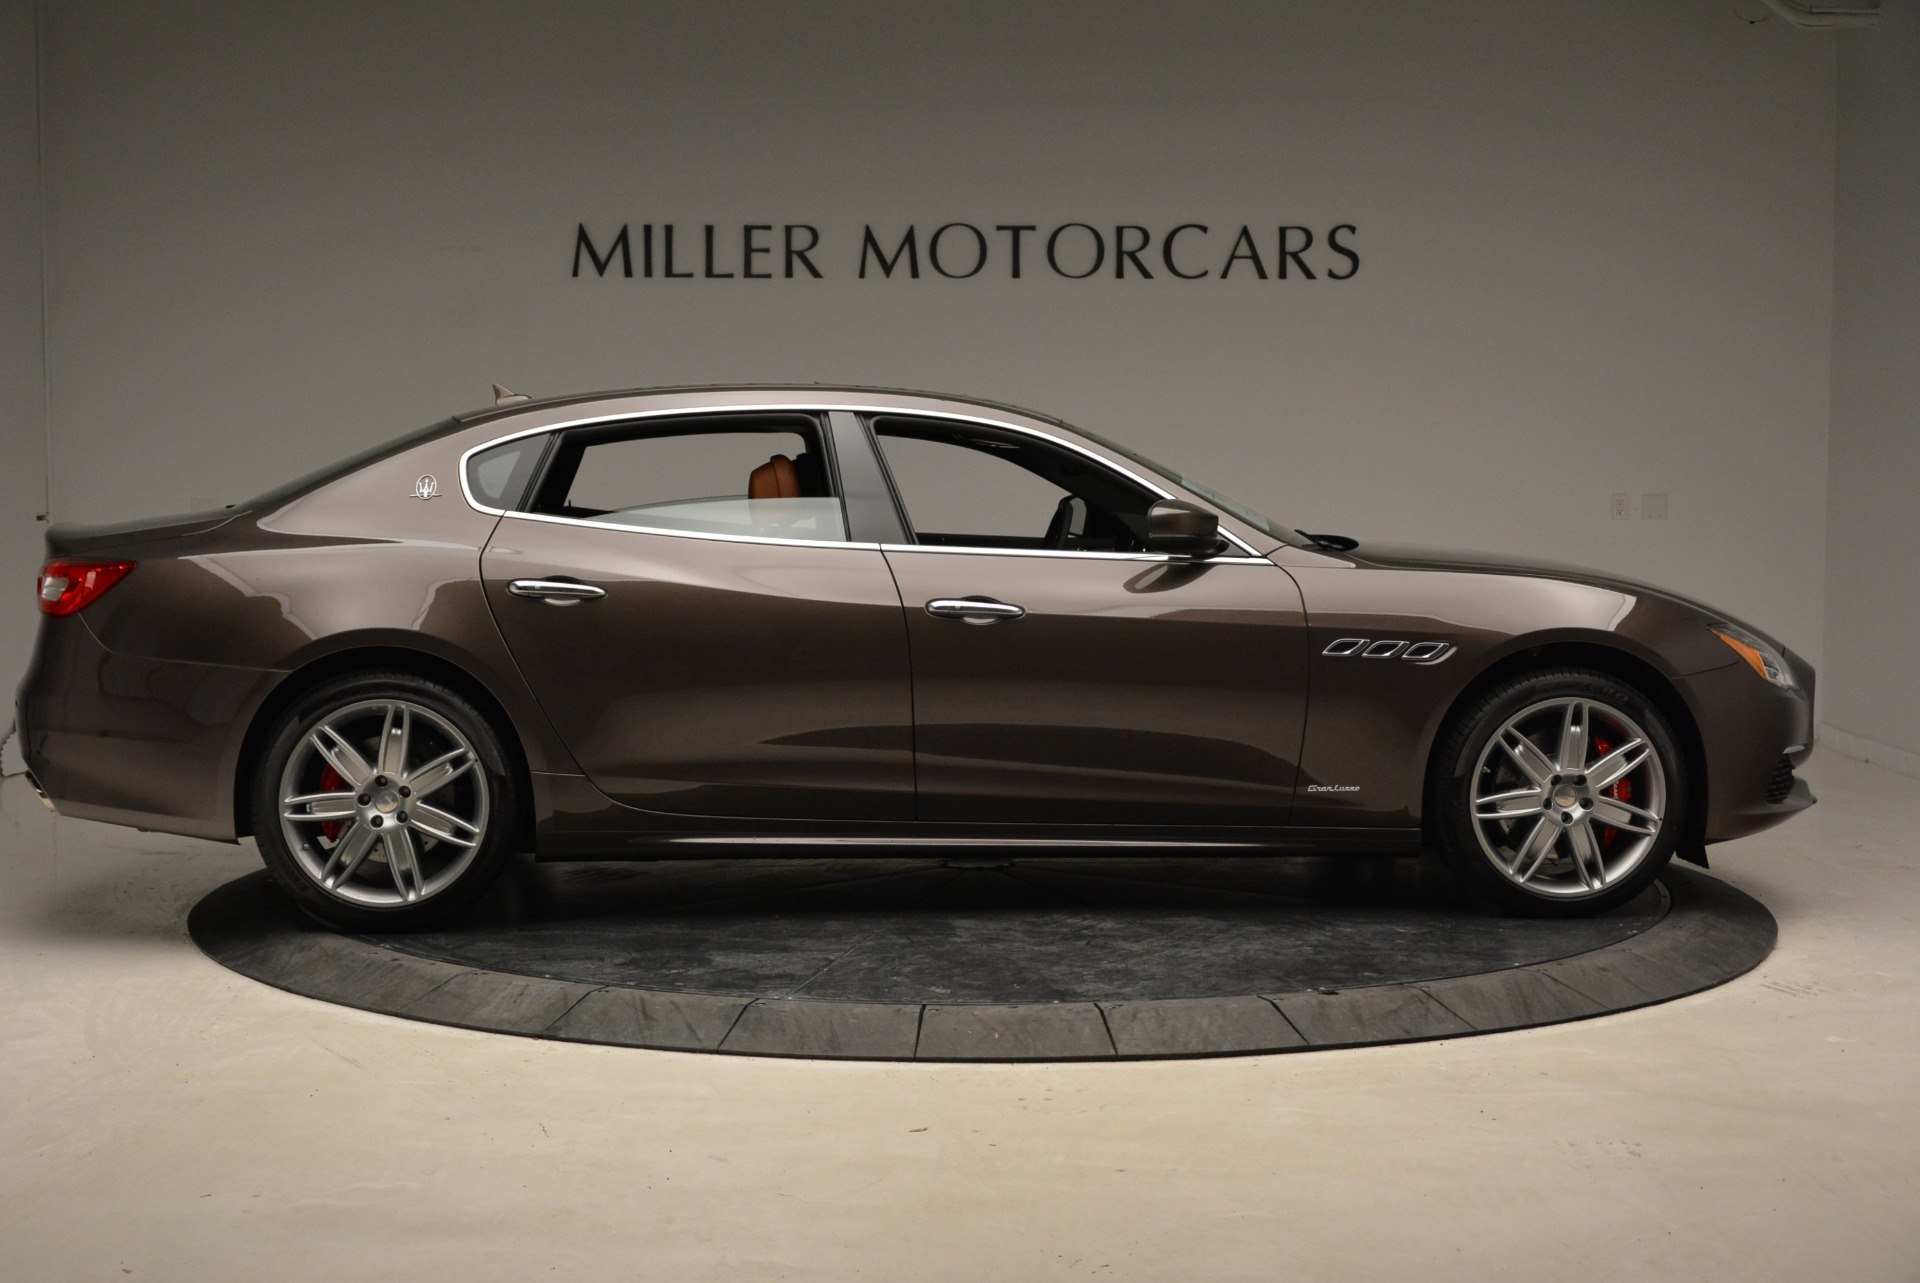 New 2018 Maserati Quattroporte S Q4 GranLusso For Sale In Greenwich, CT 1926_p10